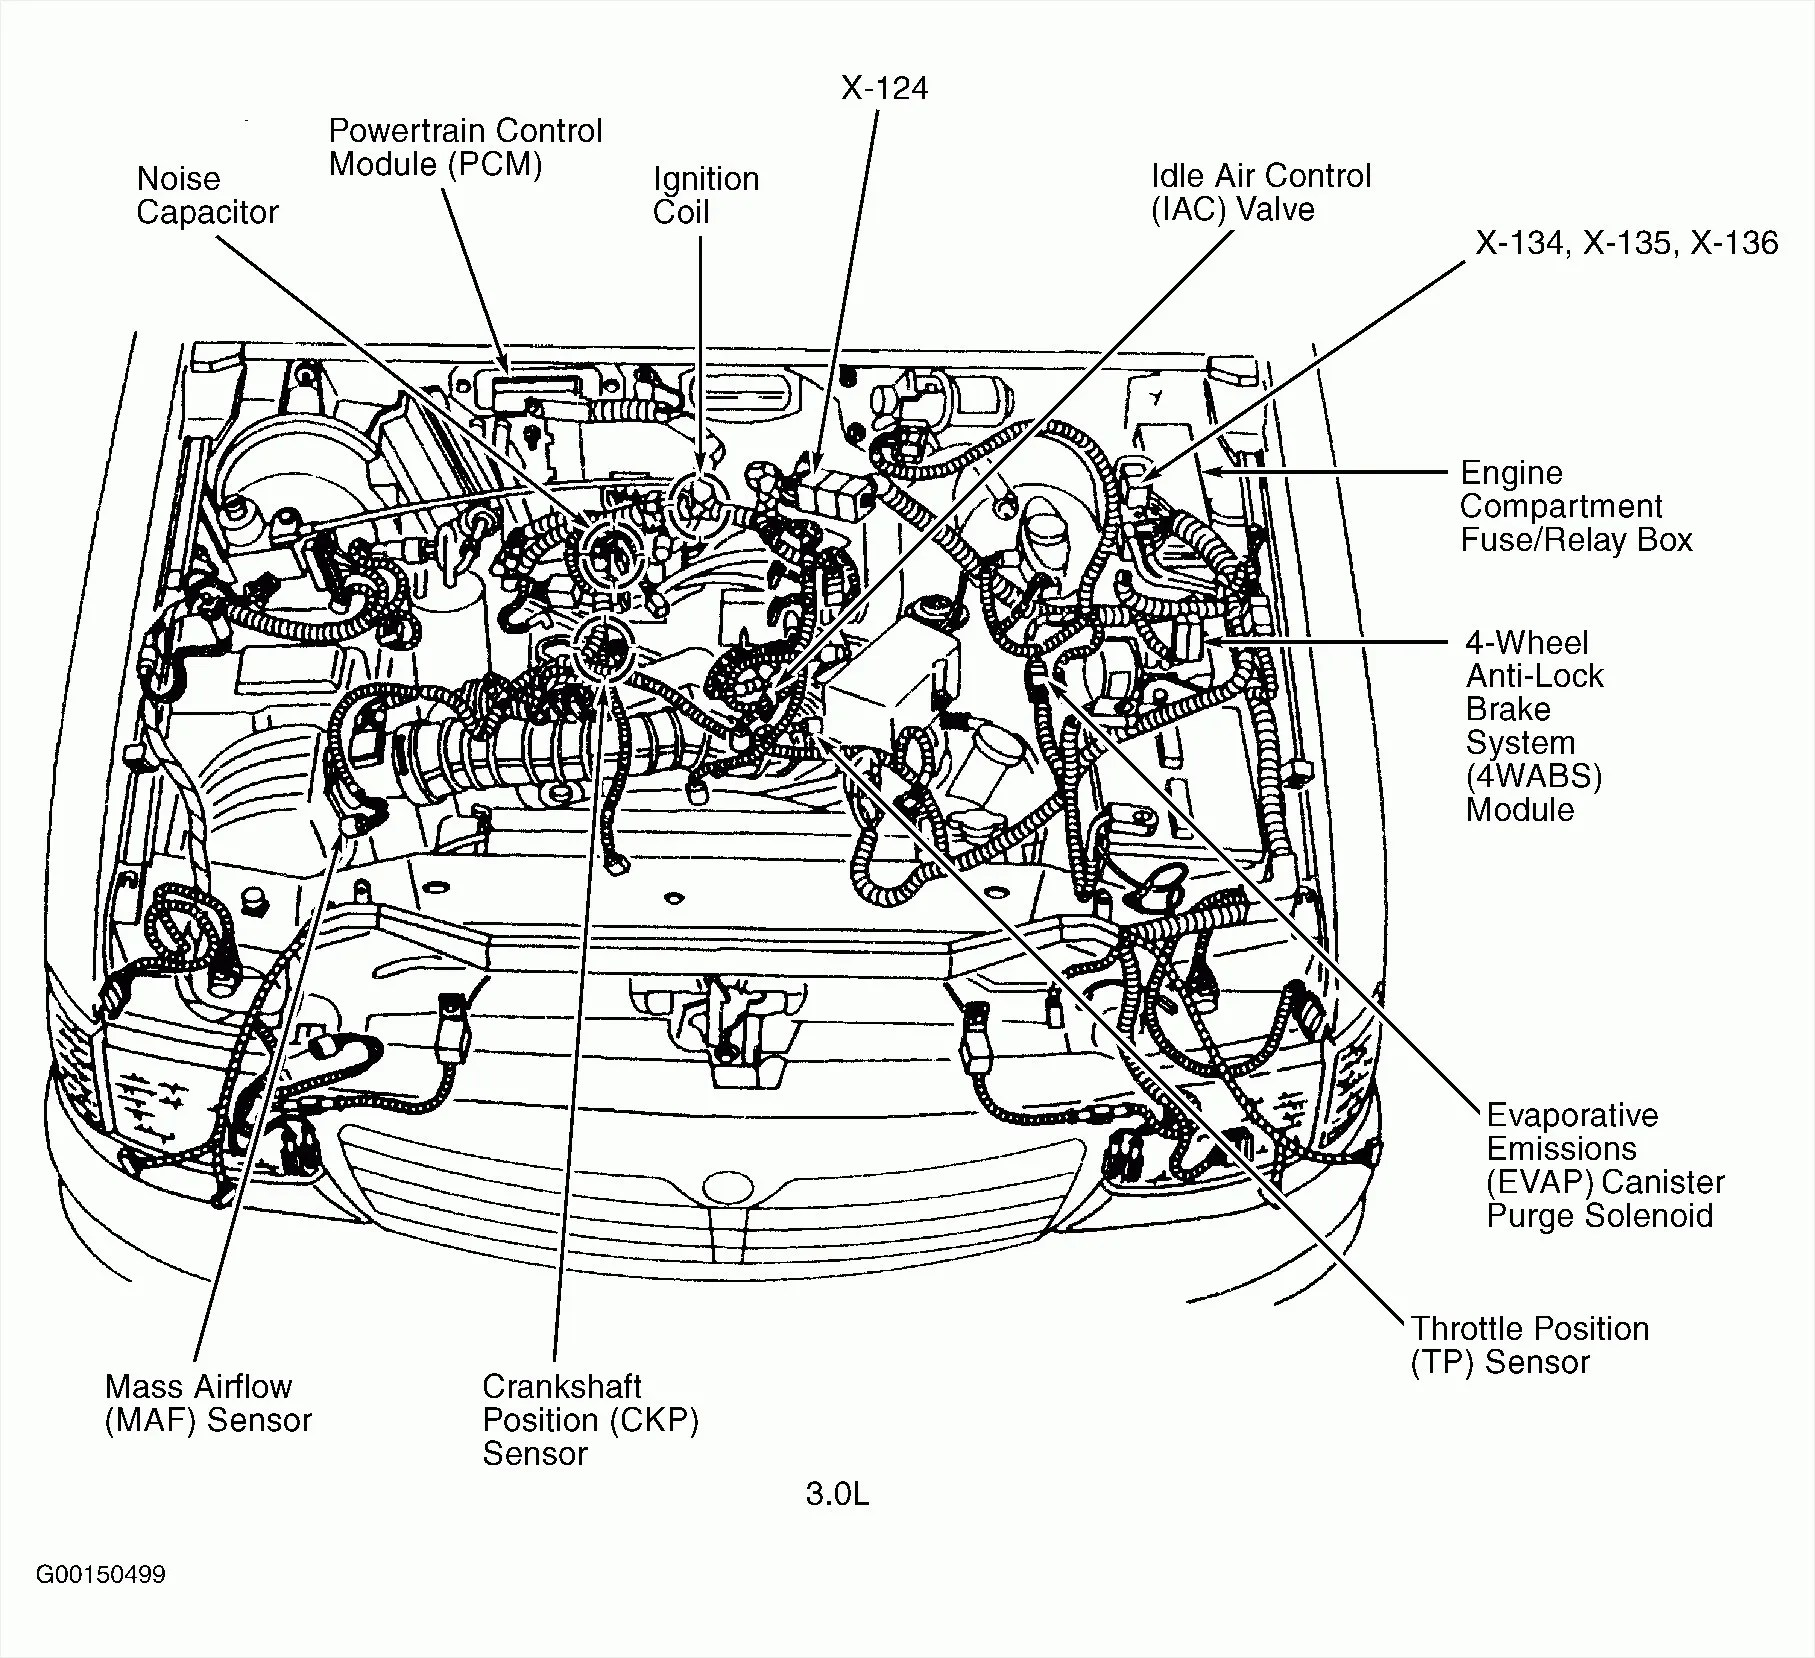 hight resolution of 2005 chrysler town and country engine diagram wiring diagram ed2005 chrysler town and country engine diagram